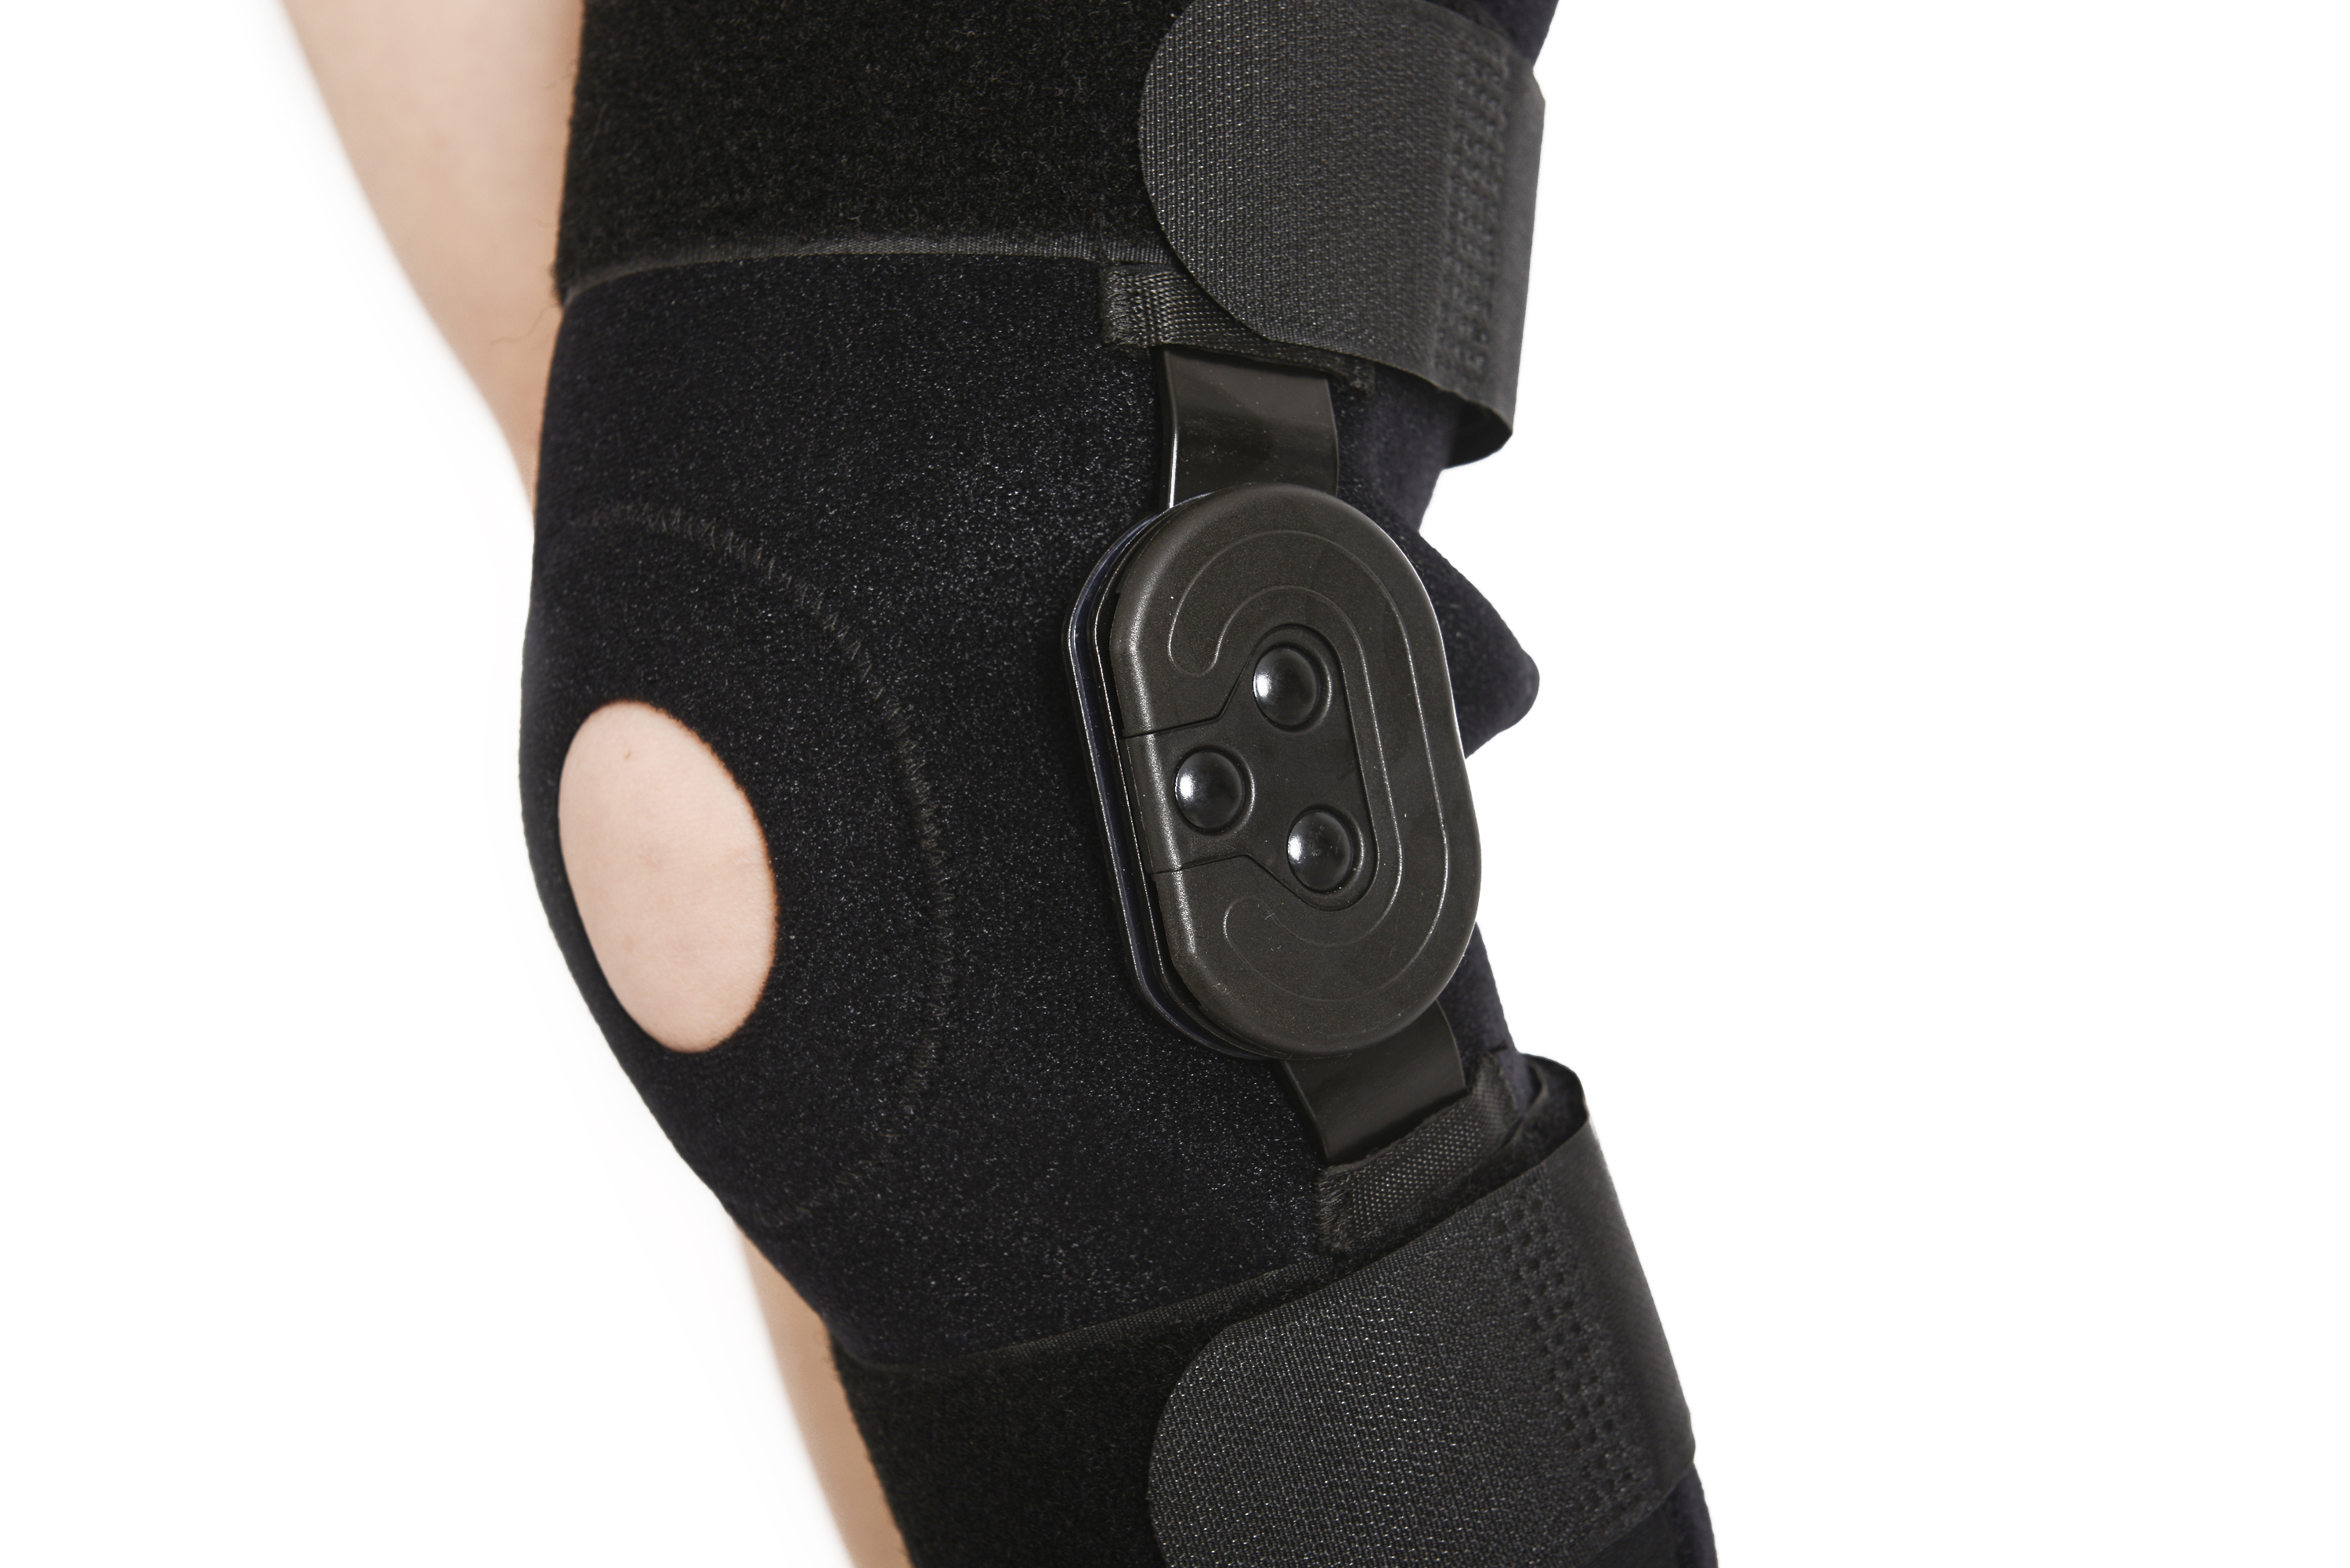 Runde Medical acl Knee brace With Rehabilitation Ligament Brace